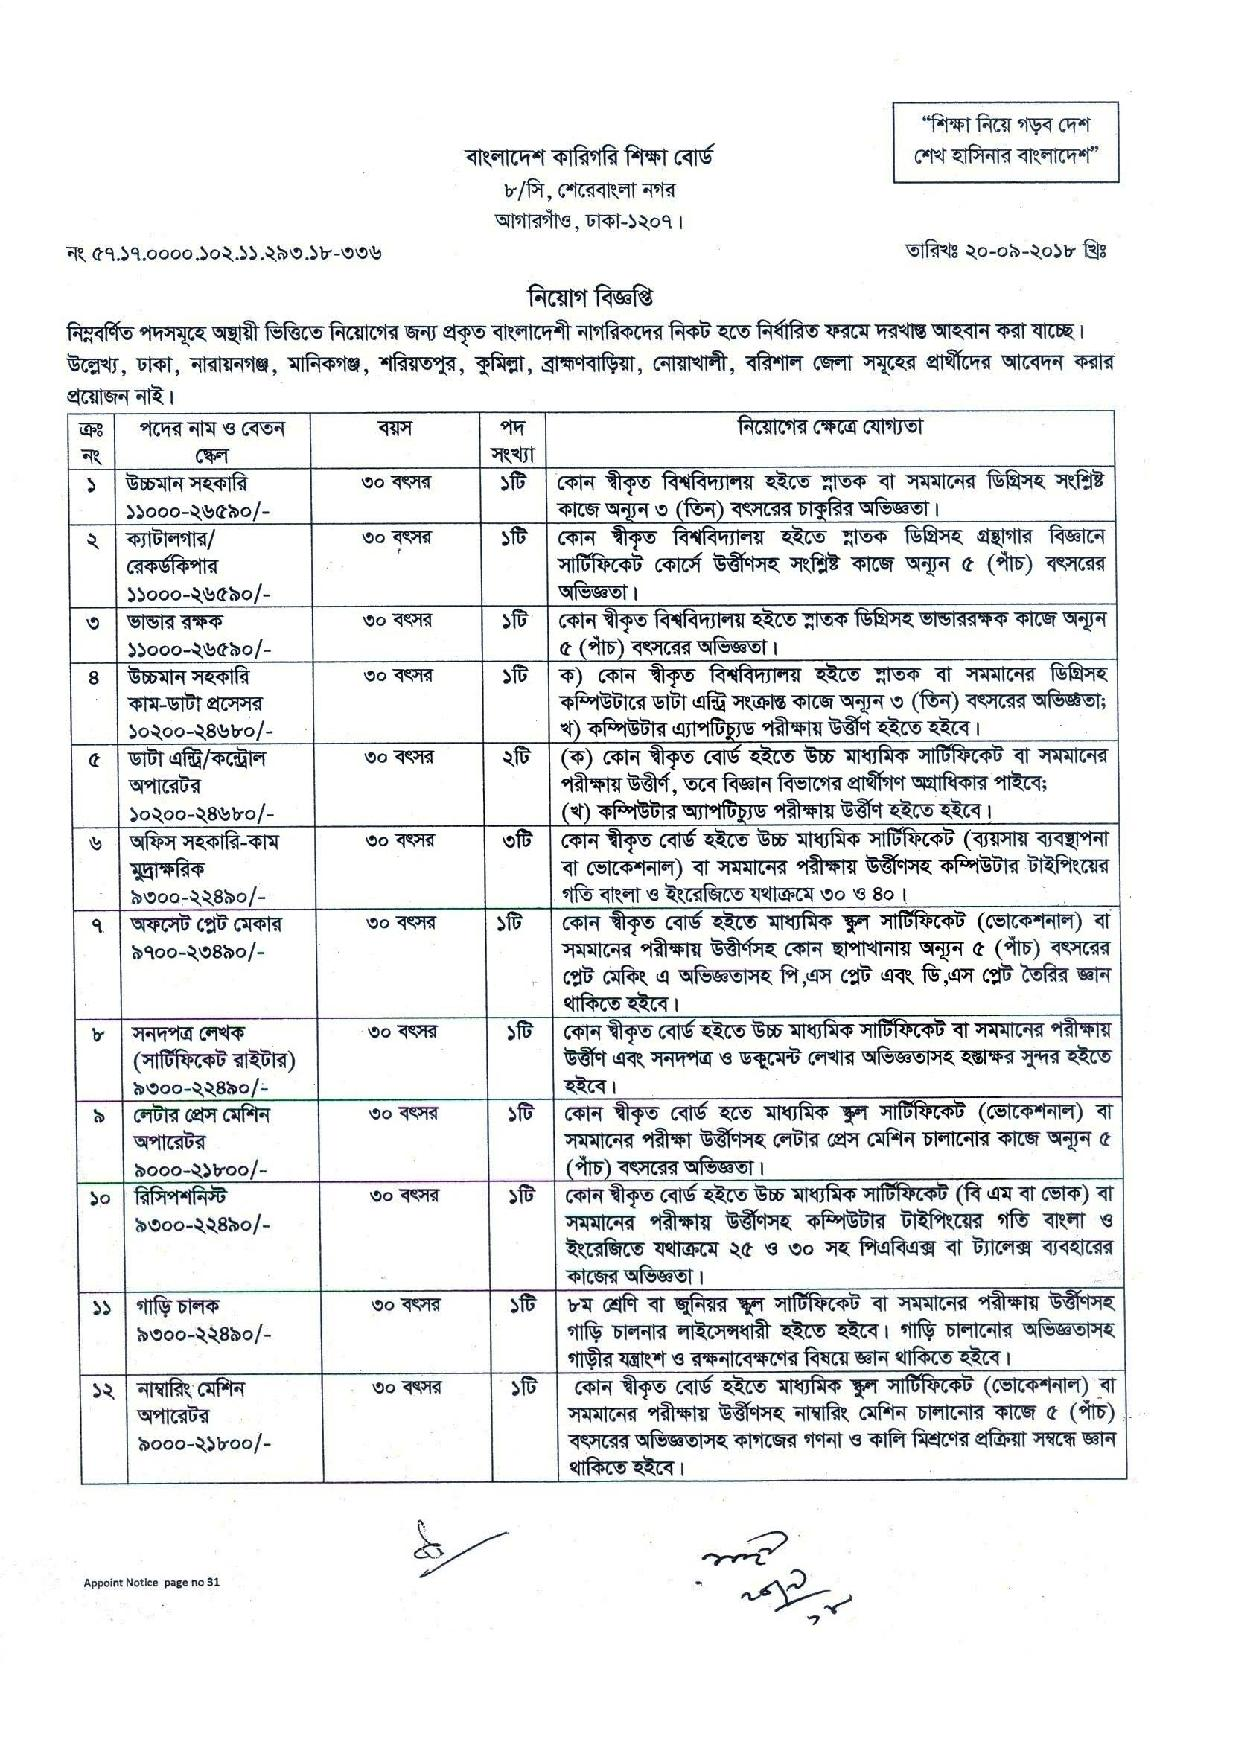 Bangladesh Technical Education Board (BTEB) job circular & Apply Instruction -2018